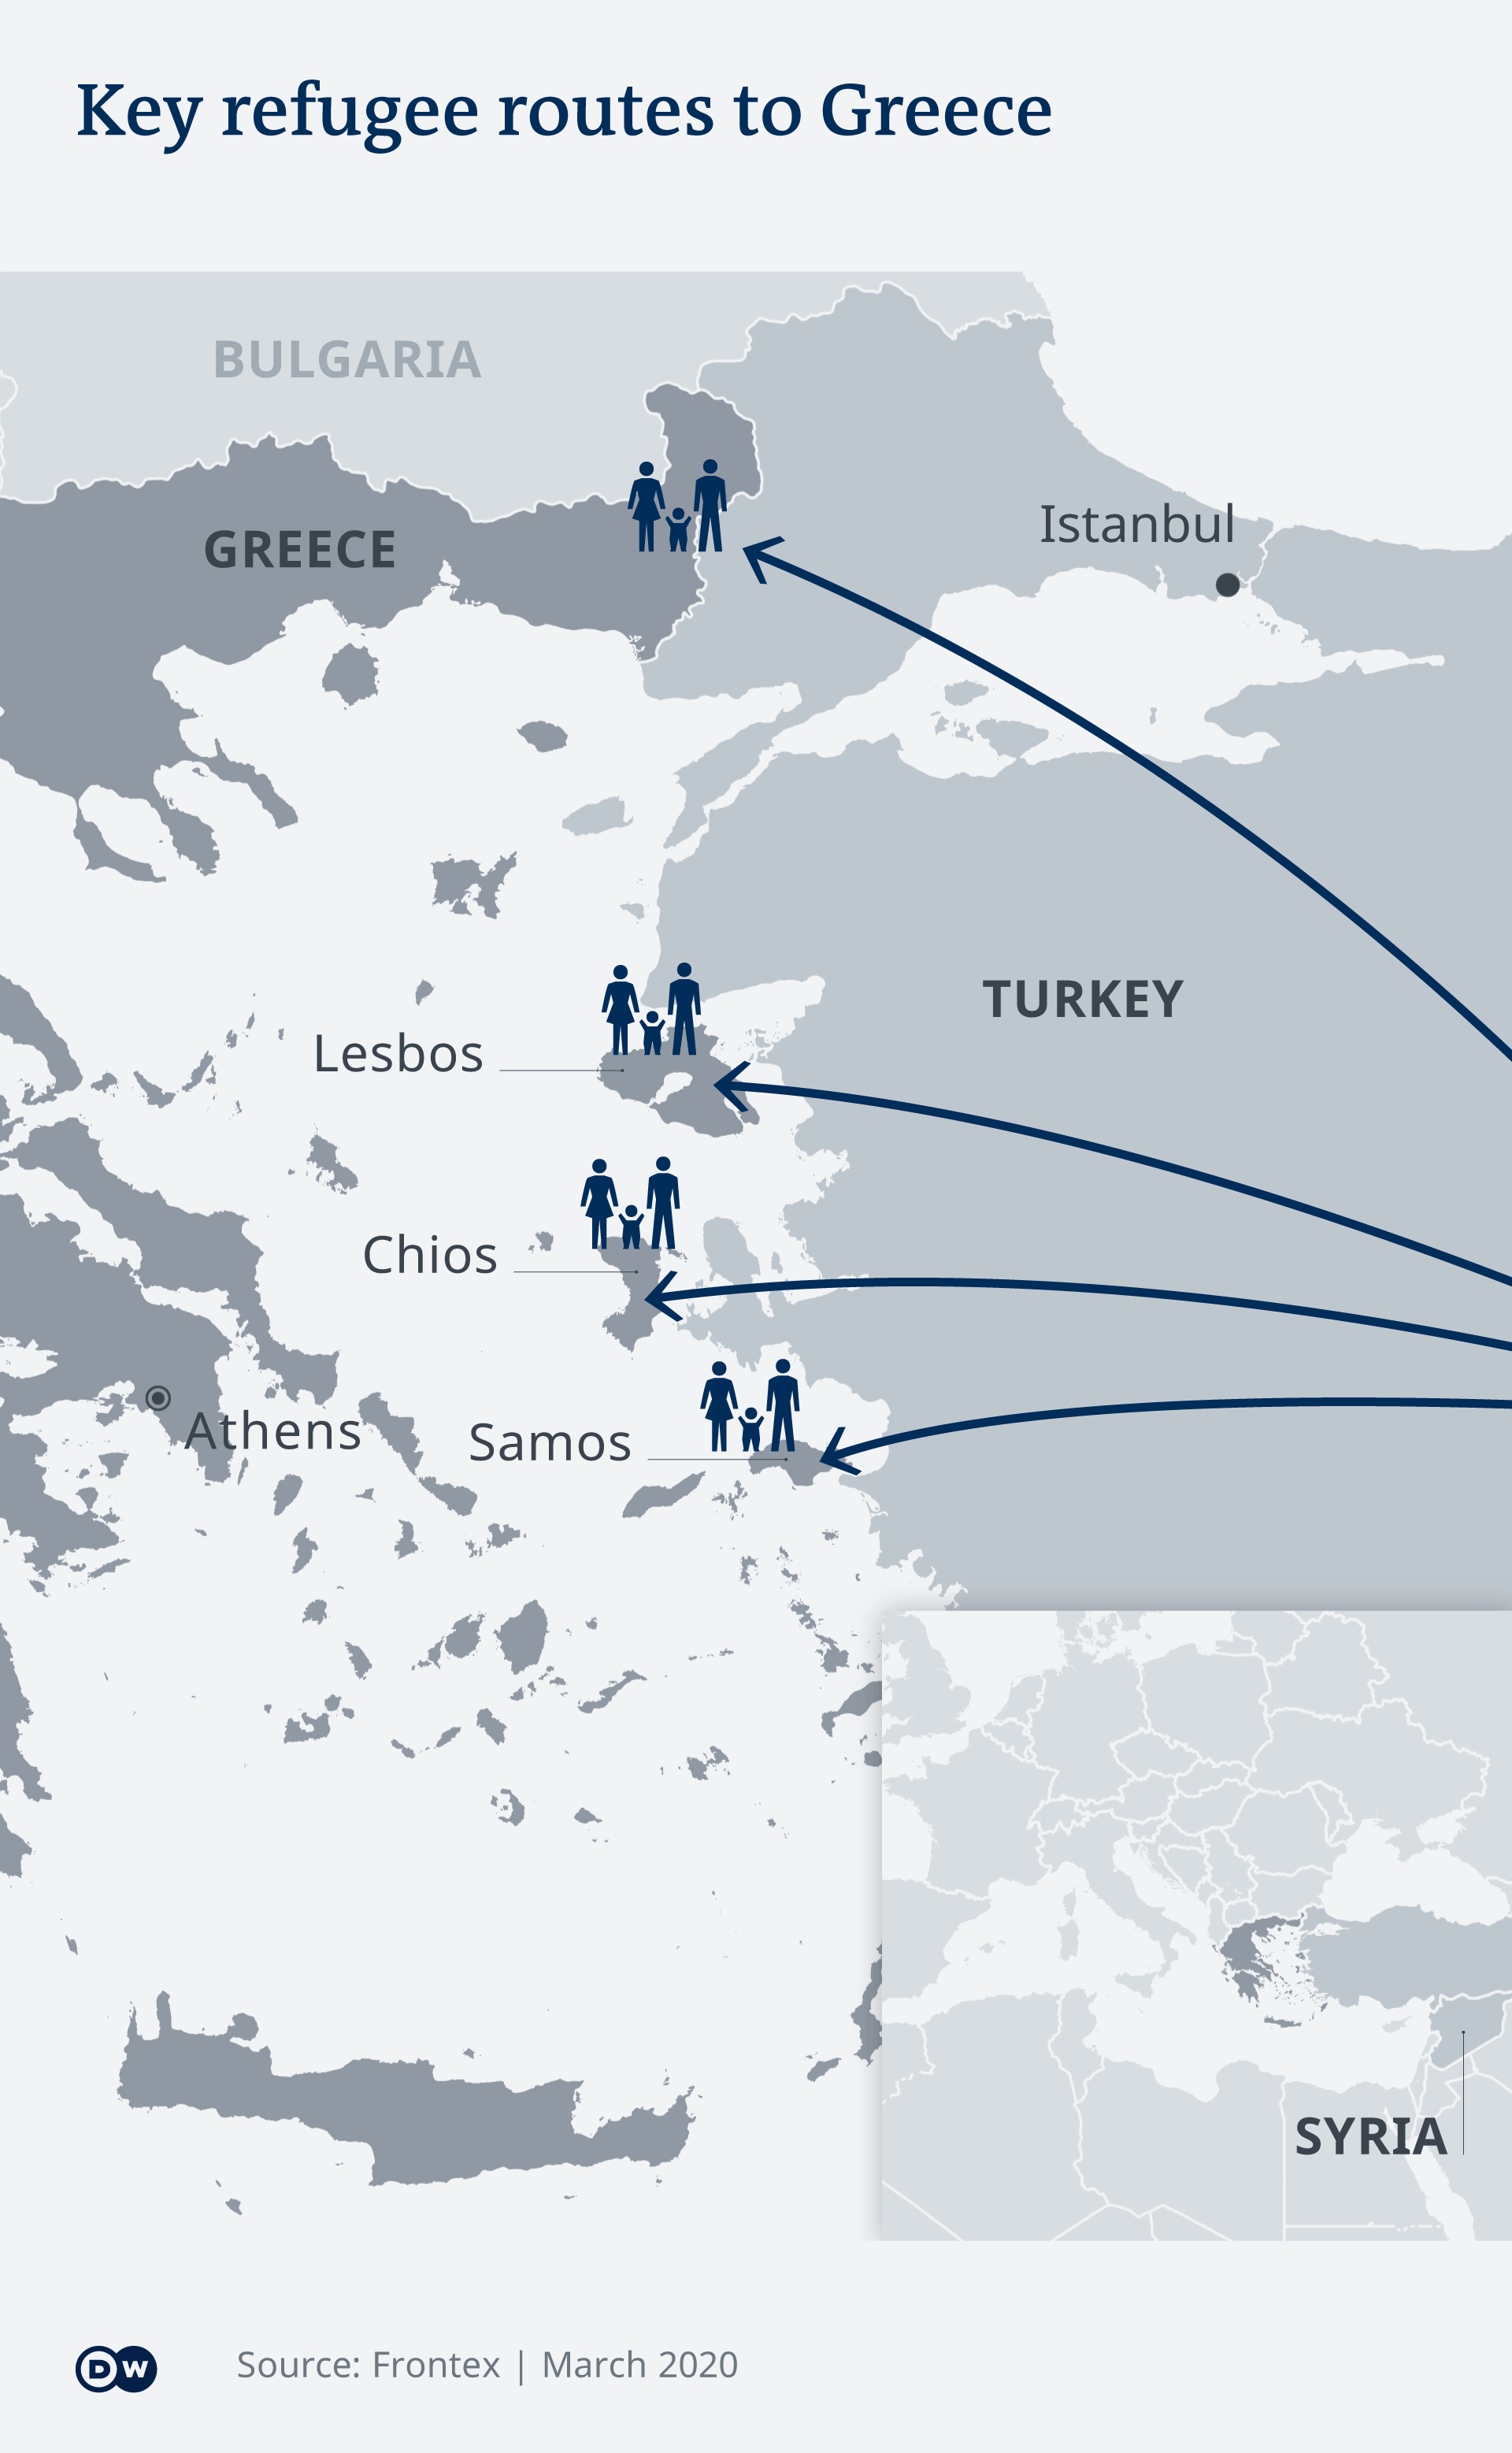 Infographic showing key refugee routes to Europe